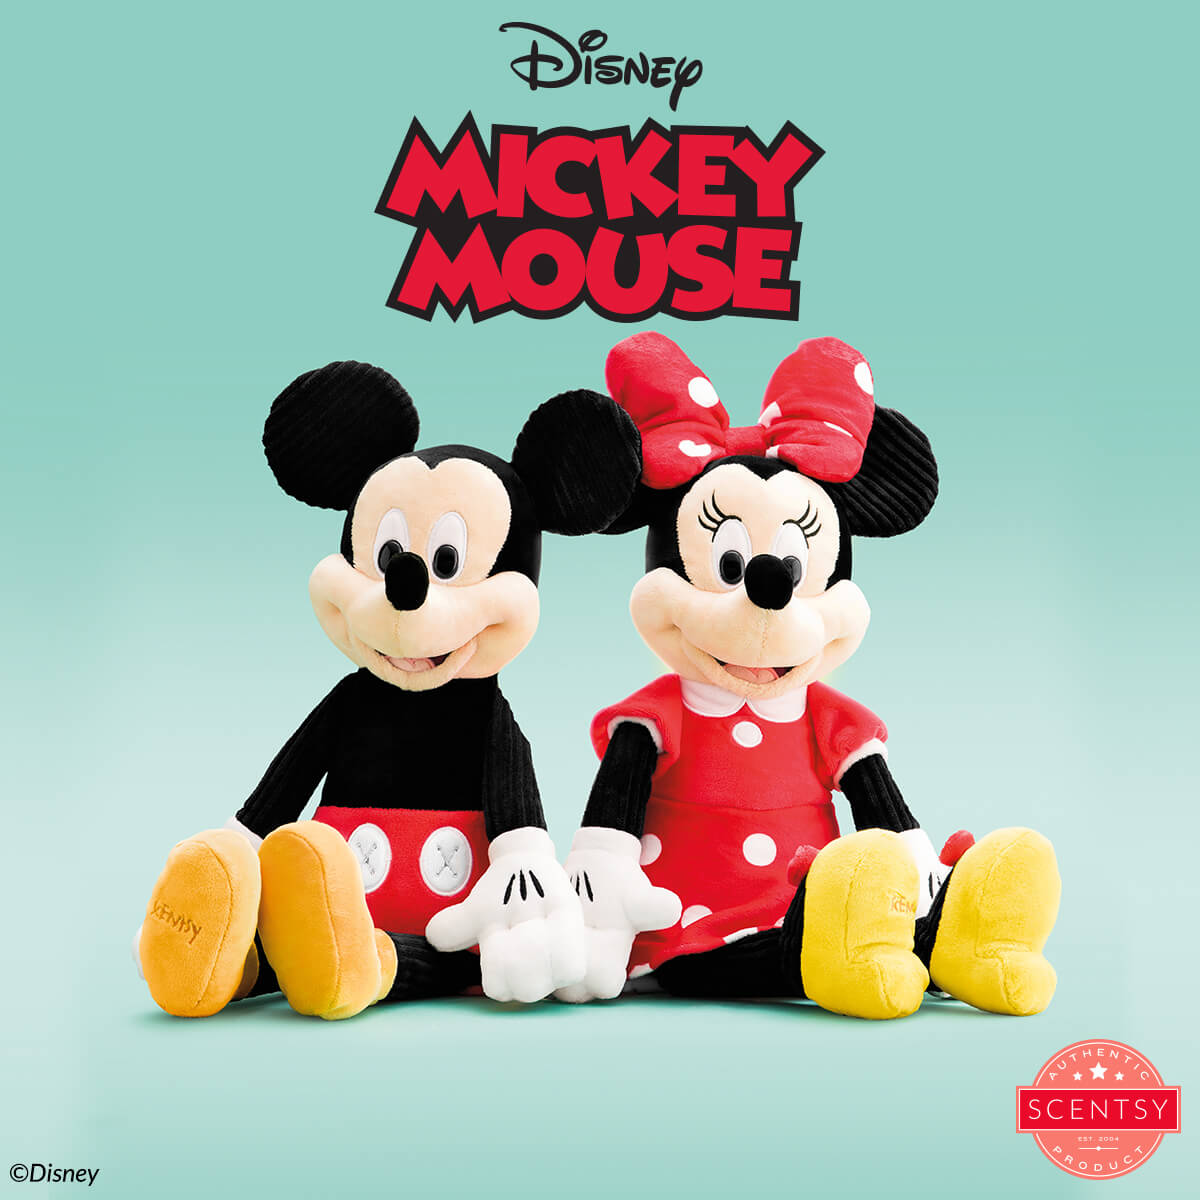 SCENTSY MICKEY MOUSE BUDDY, SCENTSY MINNIE MOUSE BUDDY